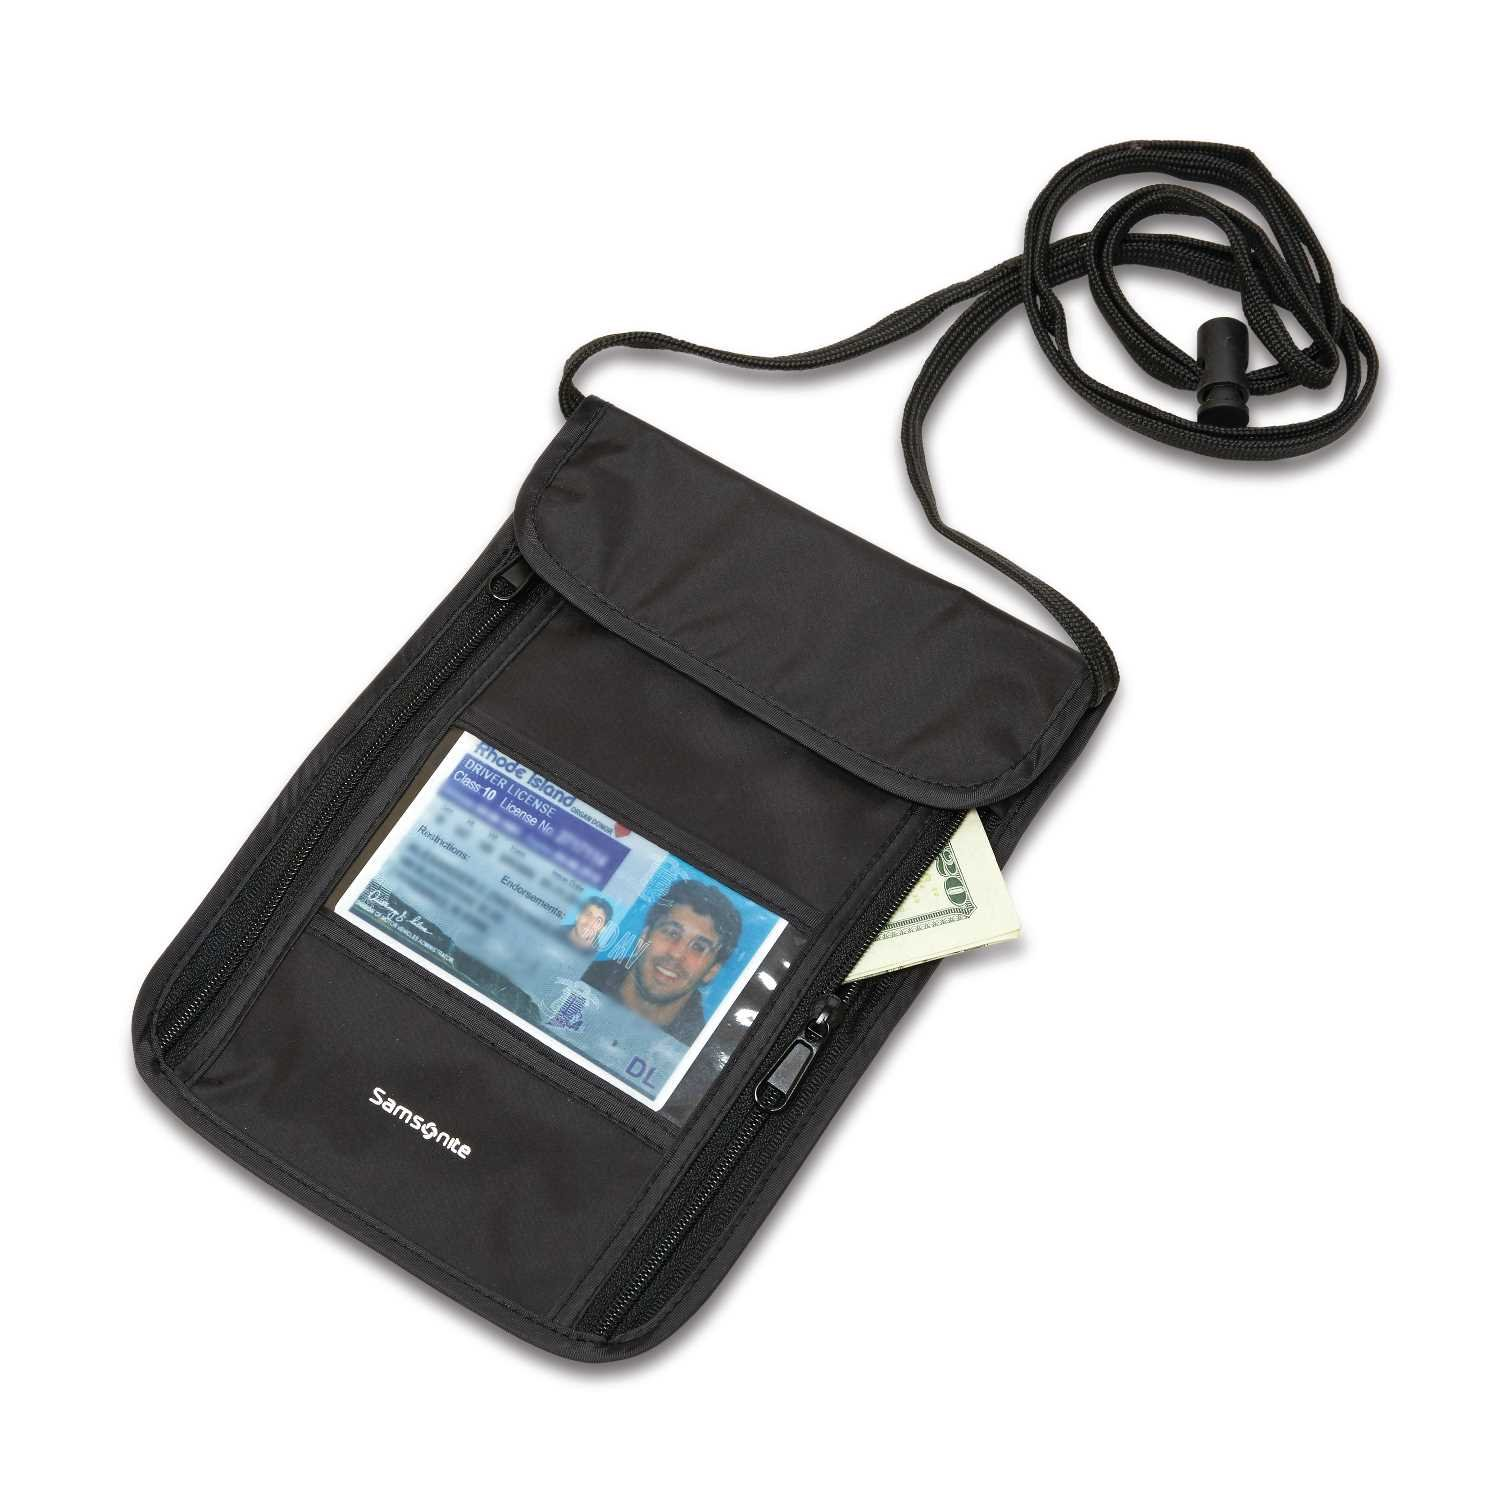 Samsonite RFID Security Neck Pouch, Black Samsonite Accessories 91149-1041